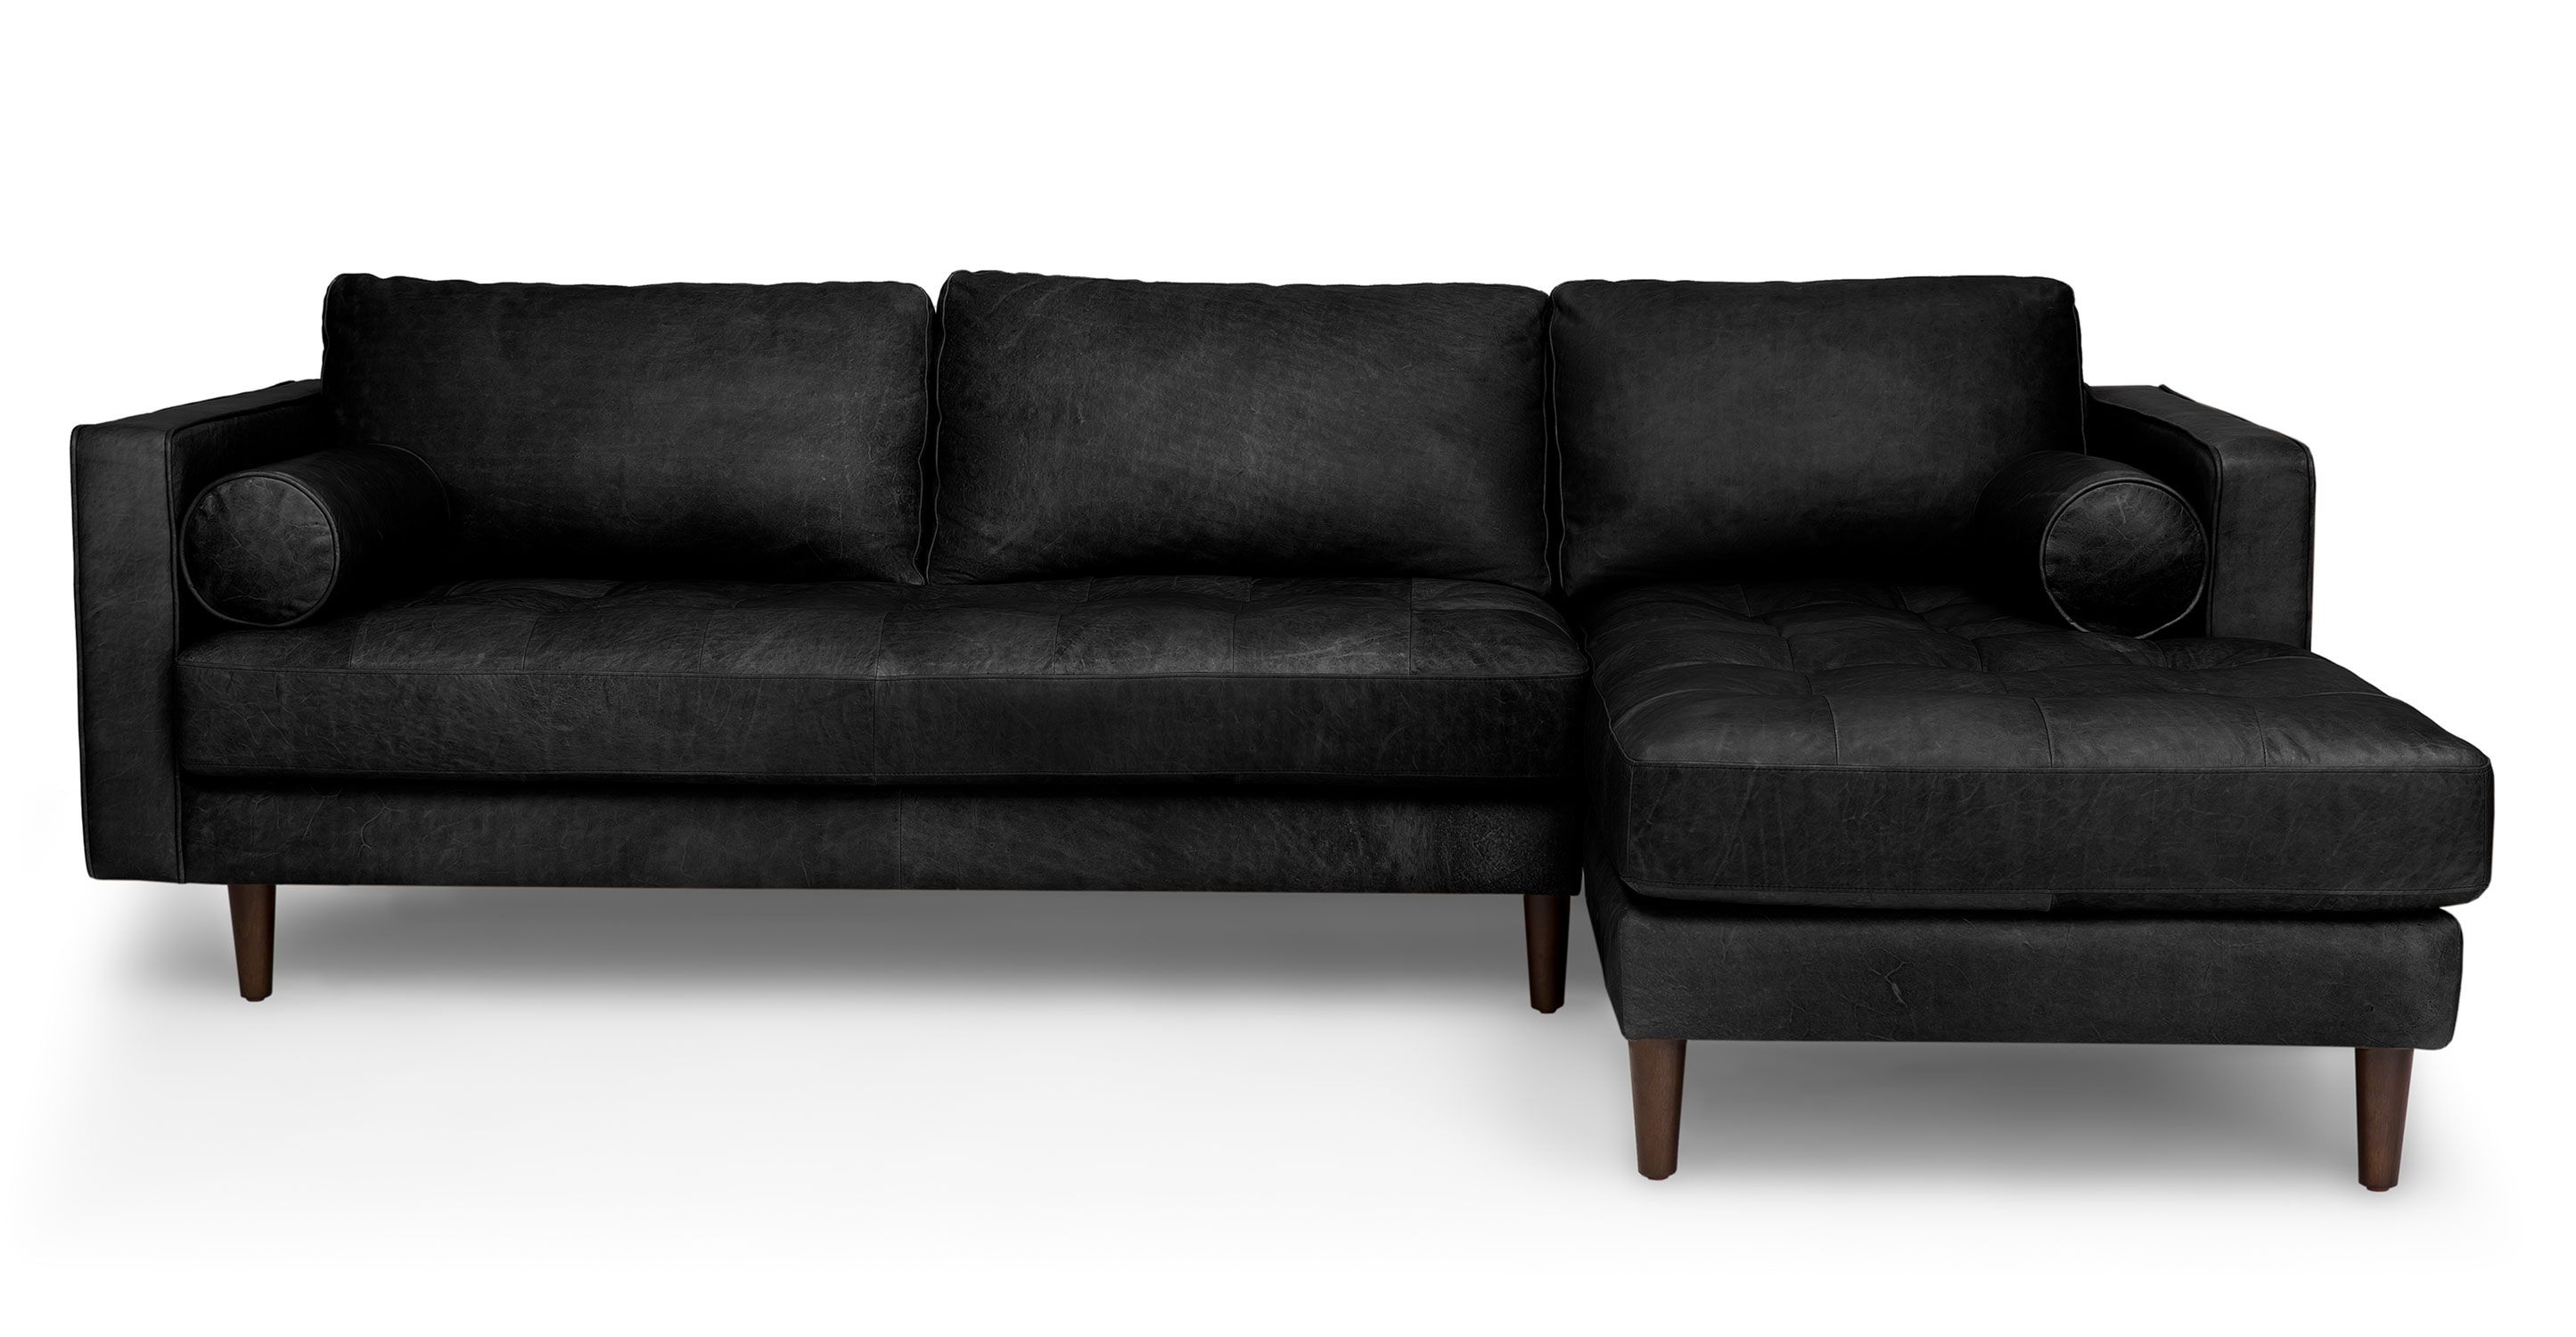 Black Leather Right Sectional Sofa Tufted